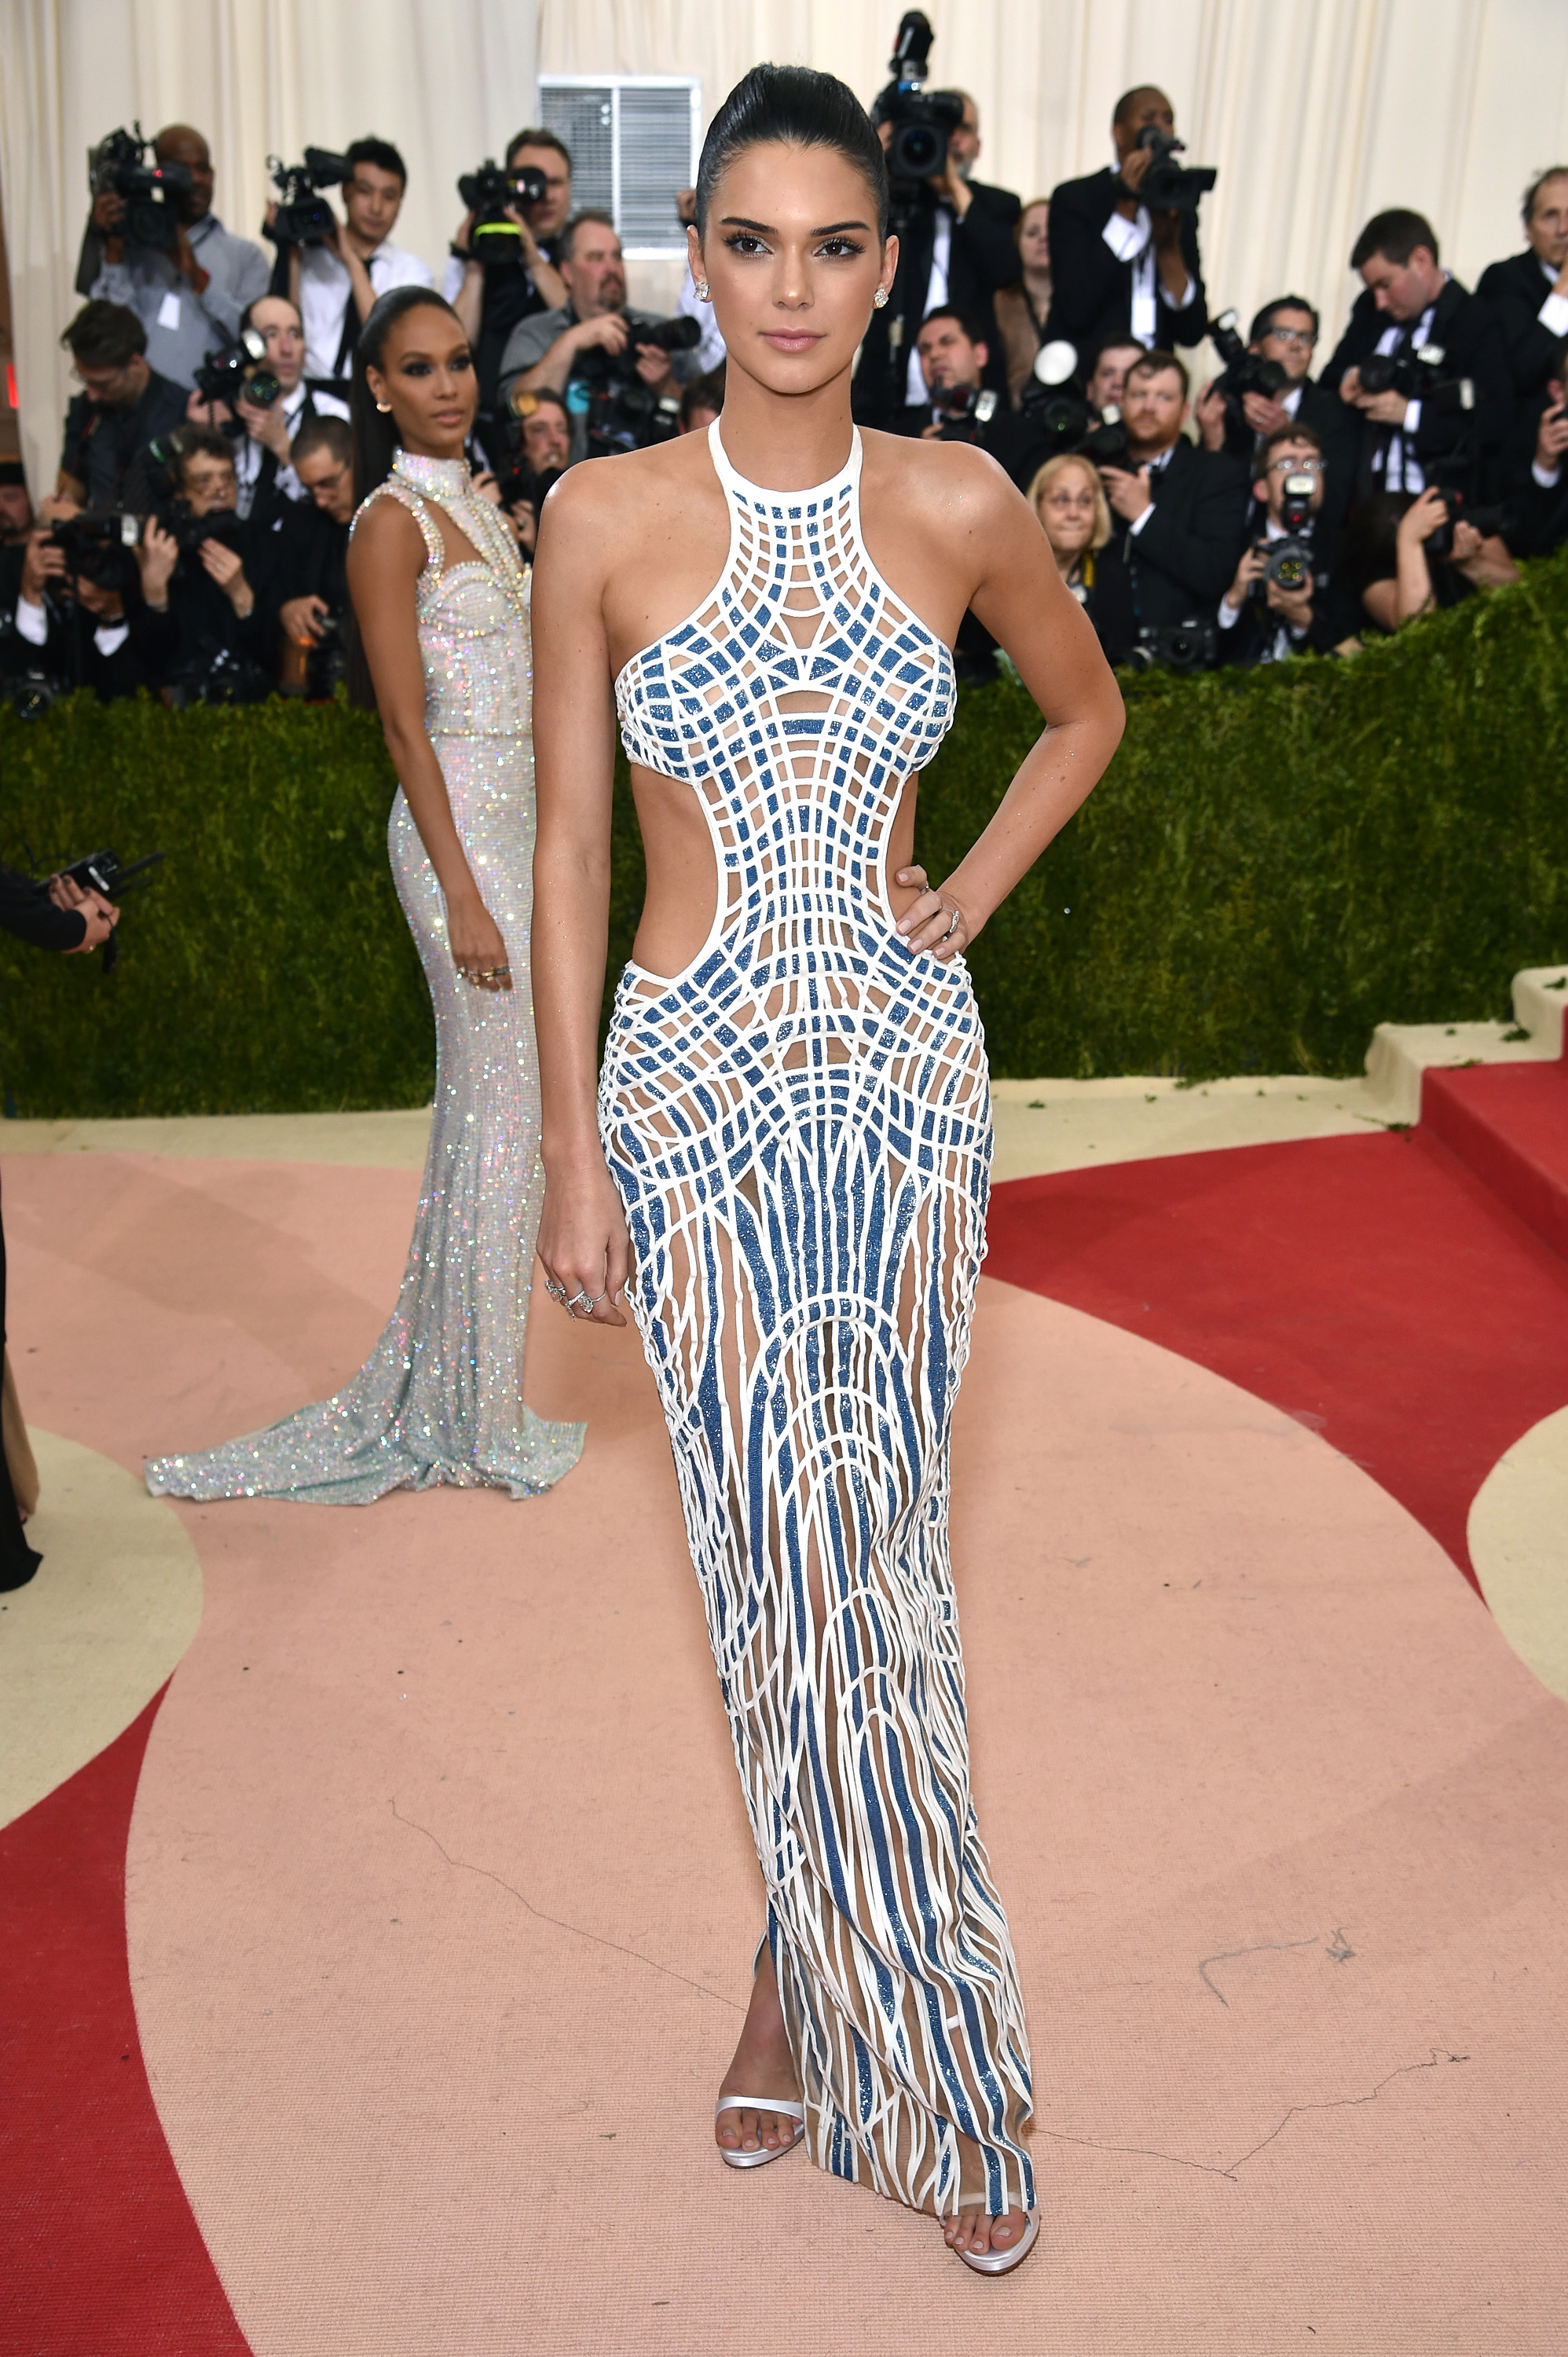 82a52f415c39 What Time is the Met Gala? Plus Everything Else You Need to Know